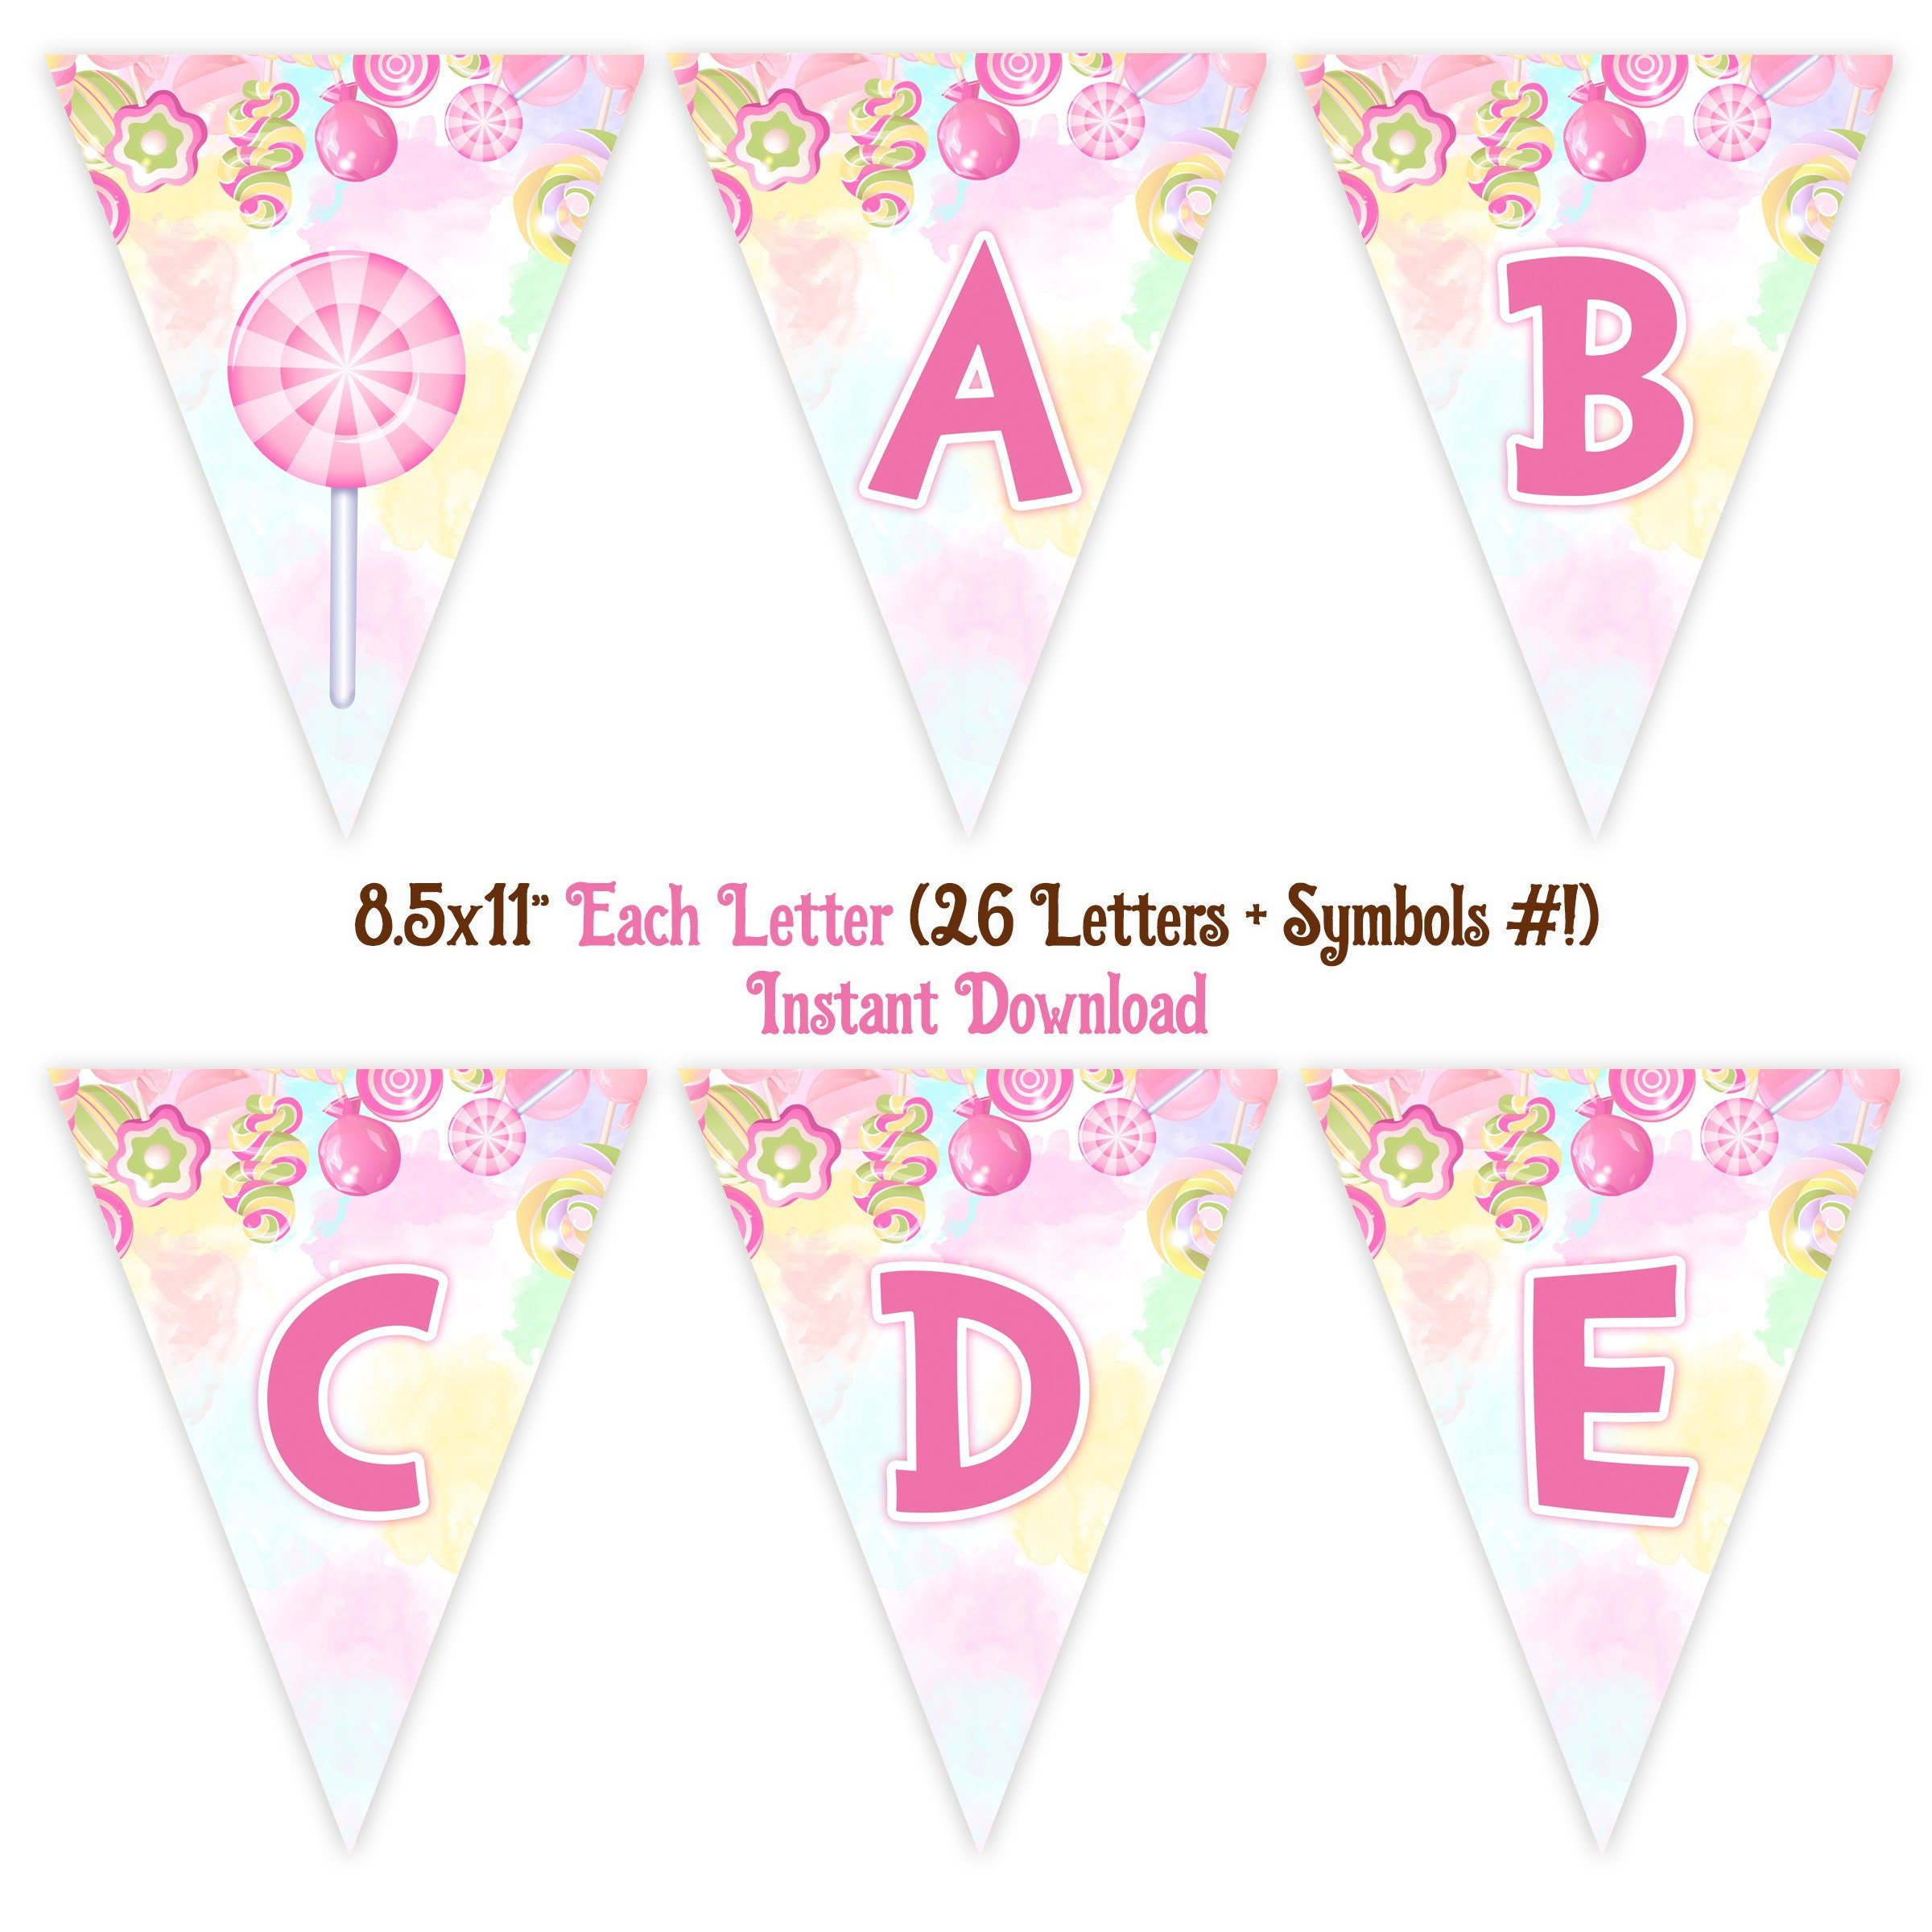 graphic about Candyland Letters Printable known as Candyland Banner, Immediate Down load, 8.5x11\